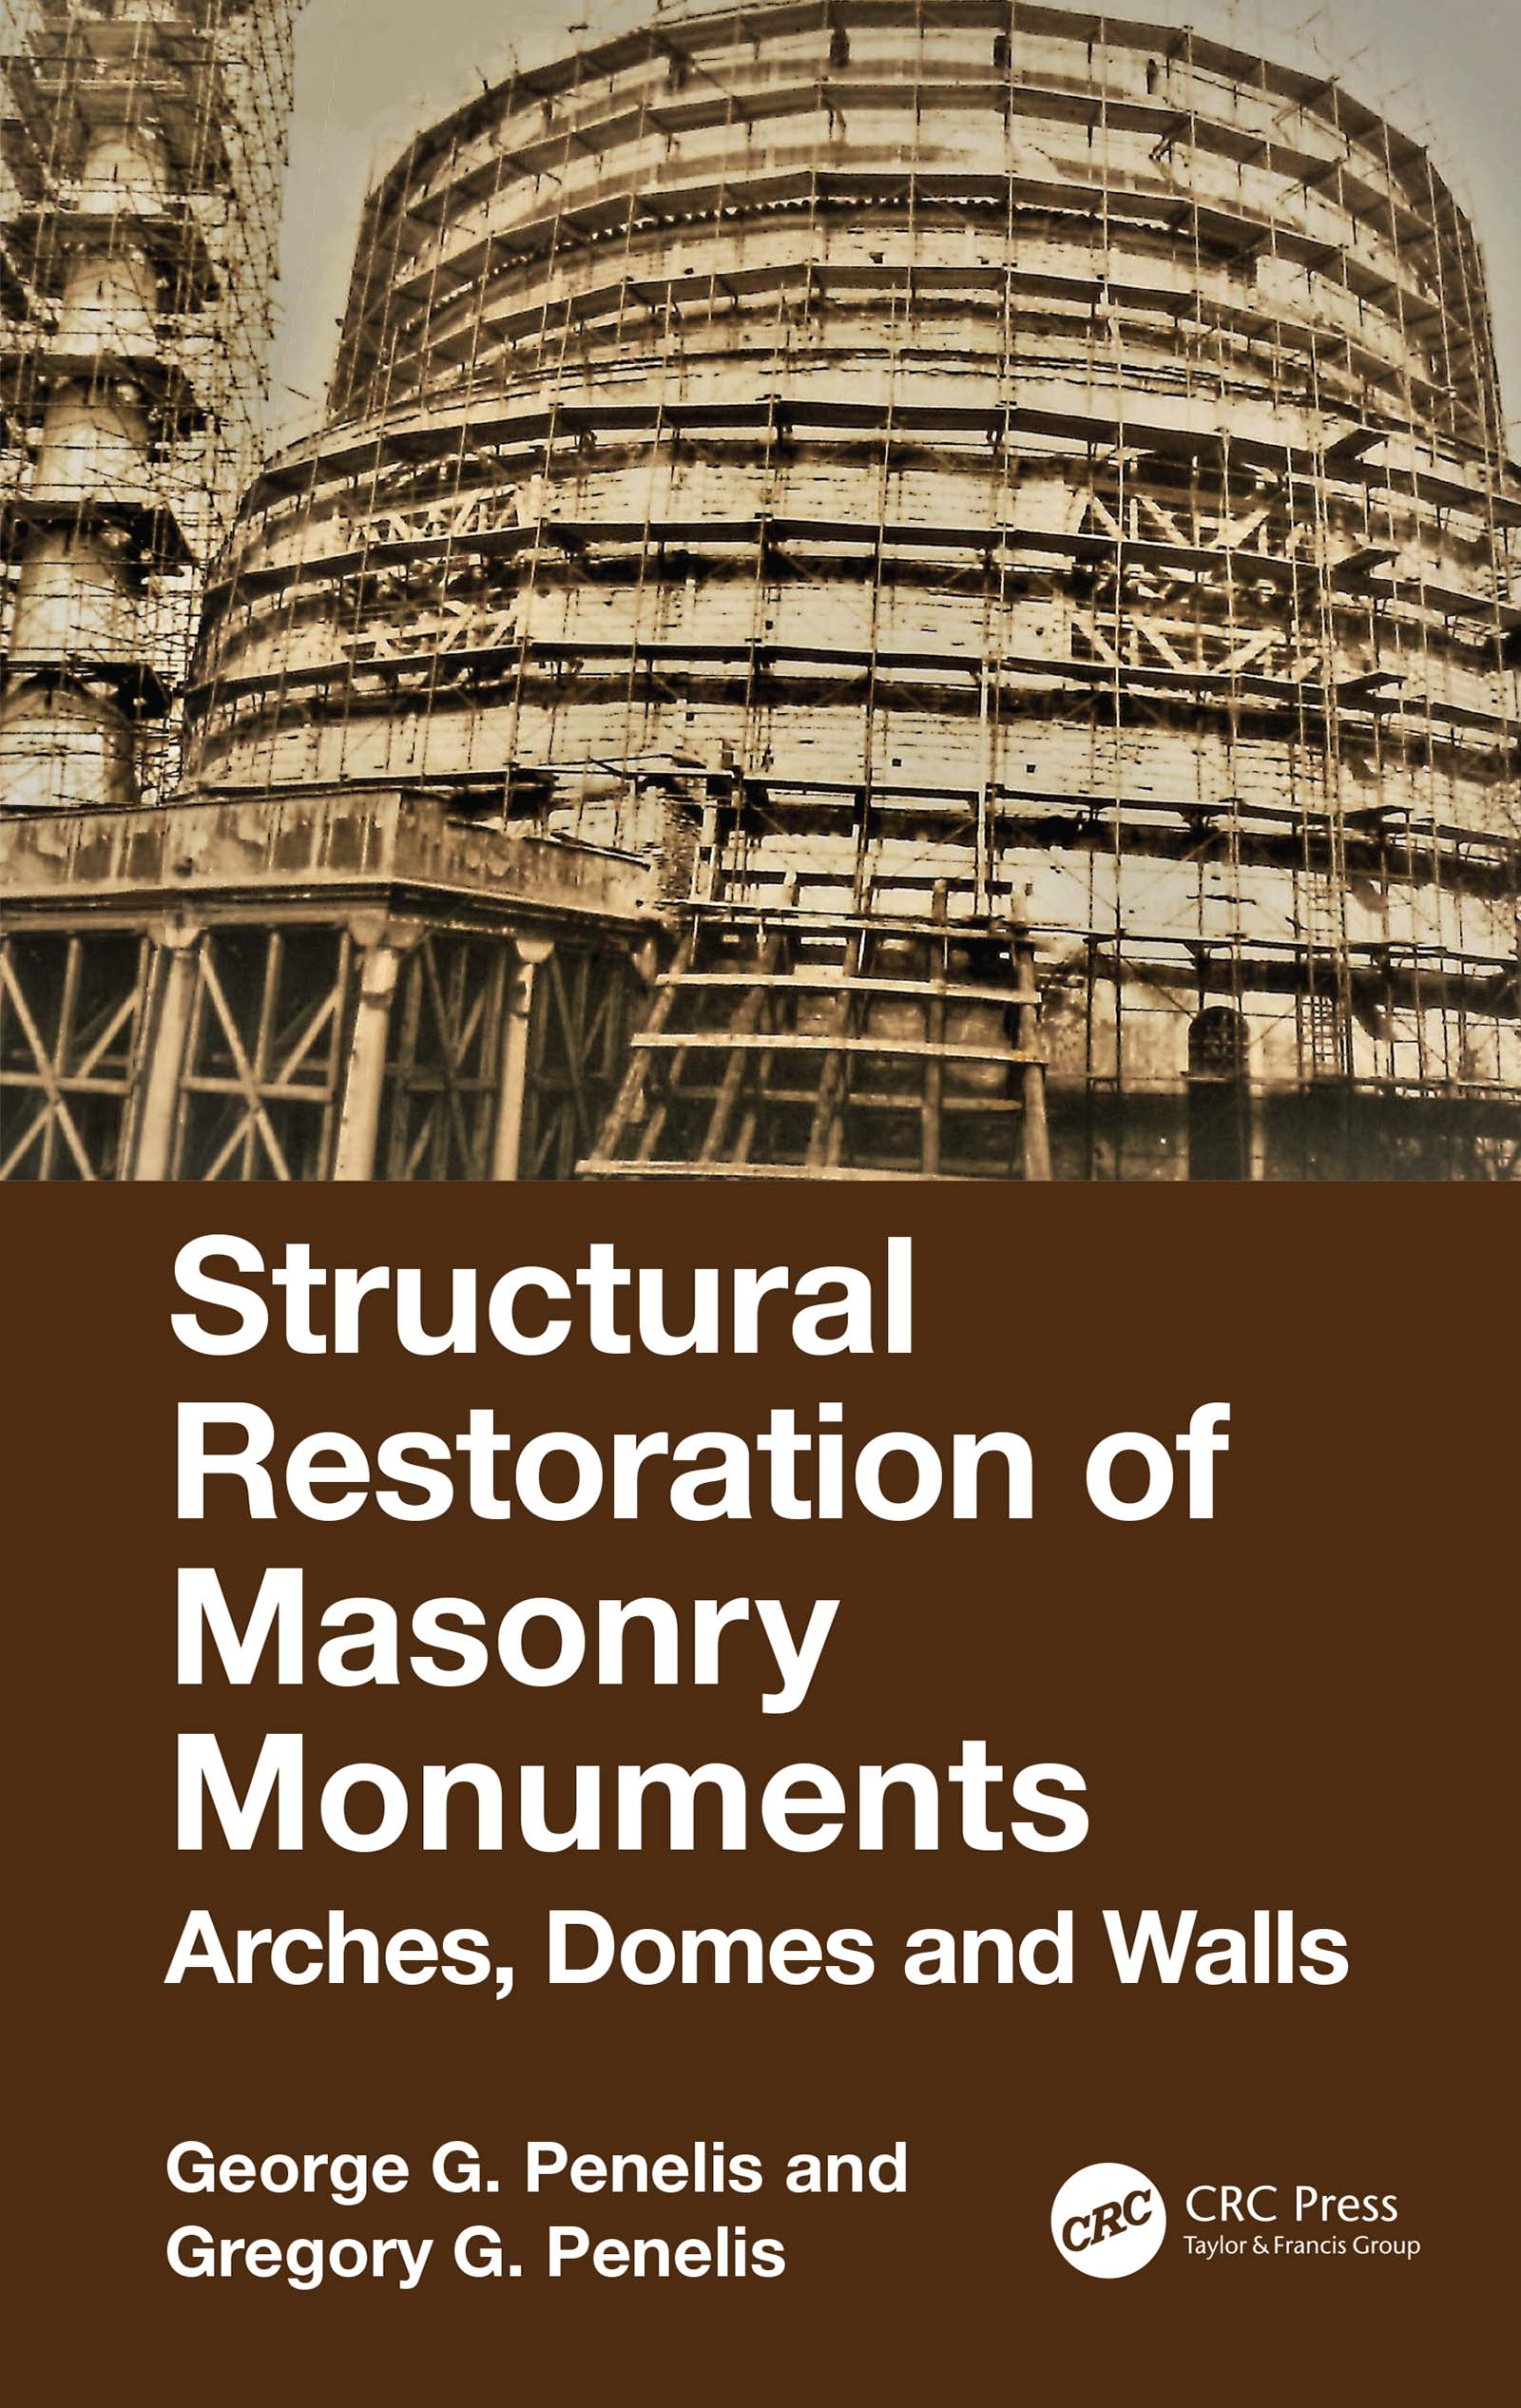 Structural Restoration of Masonry Monuments: Arches, Domes and Walls book cover